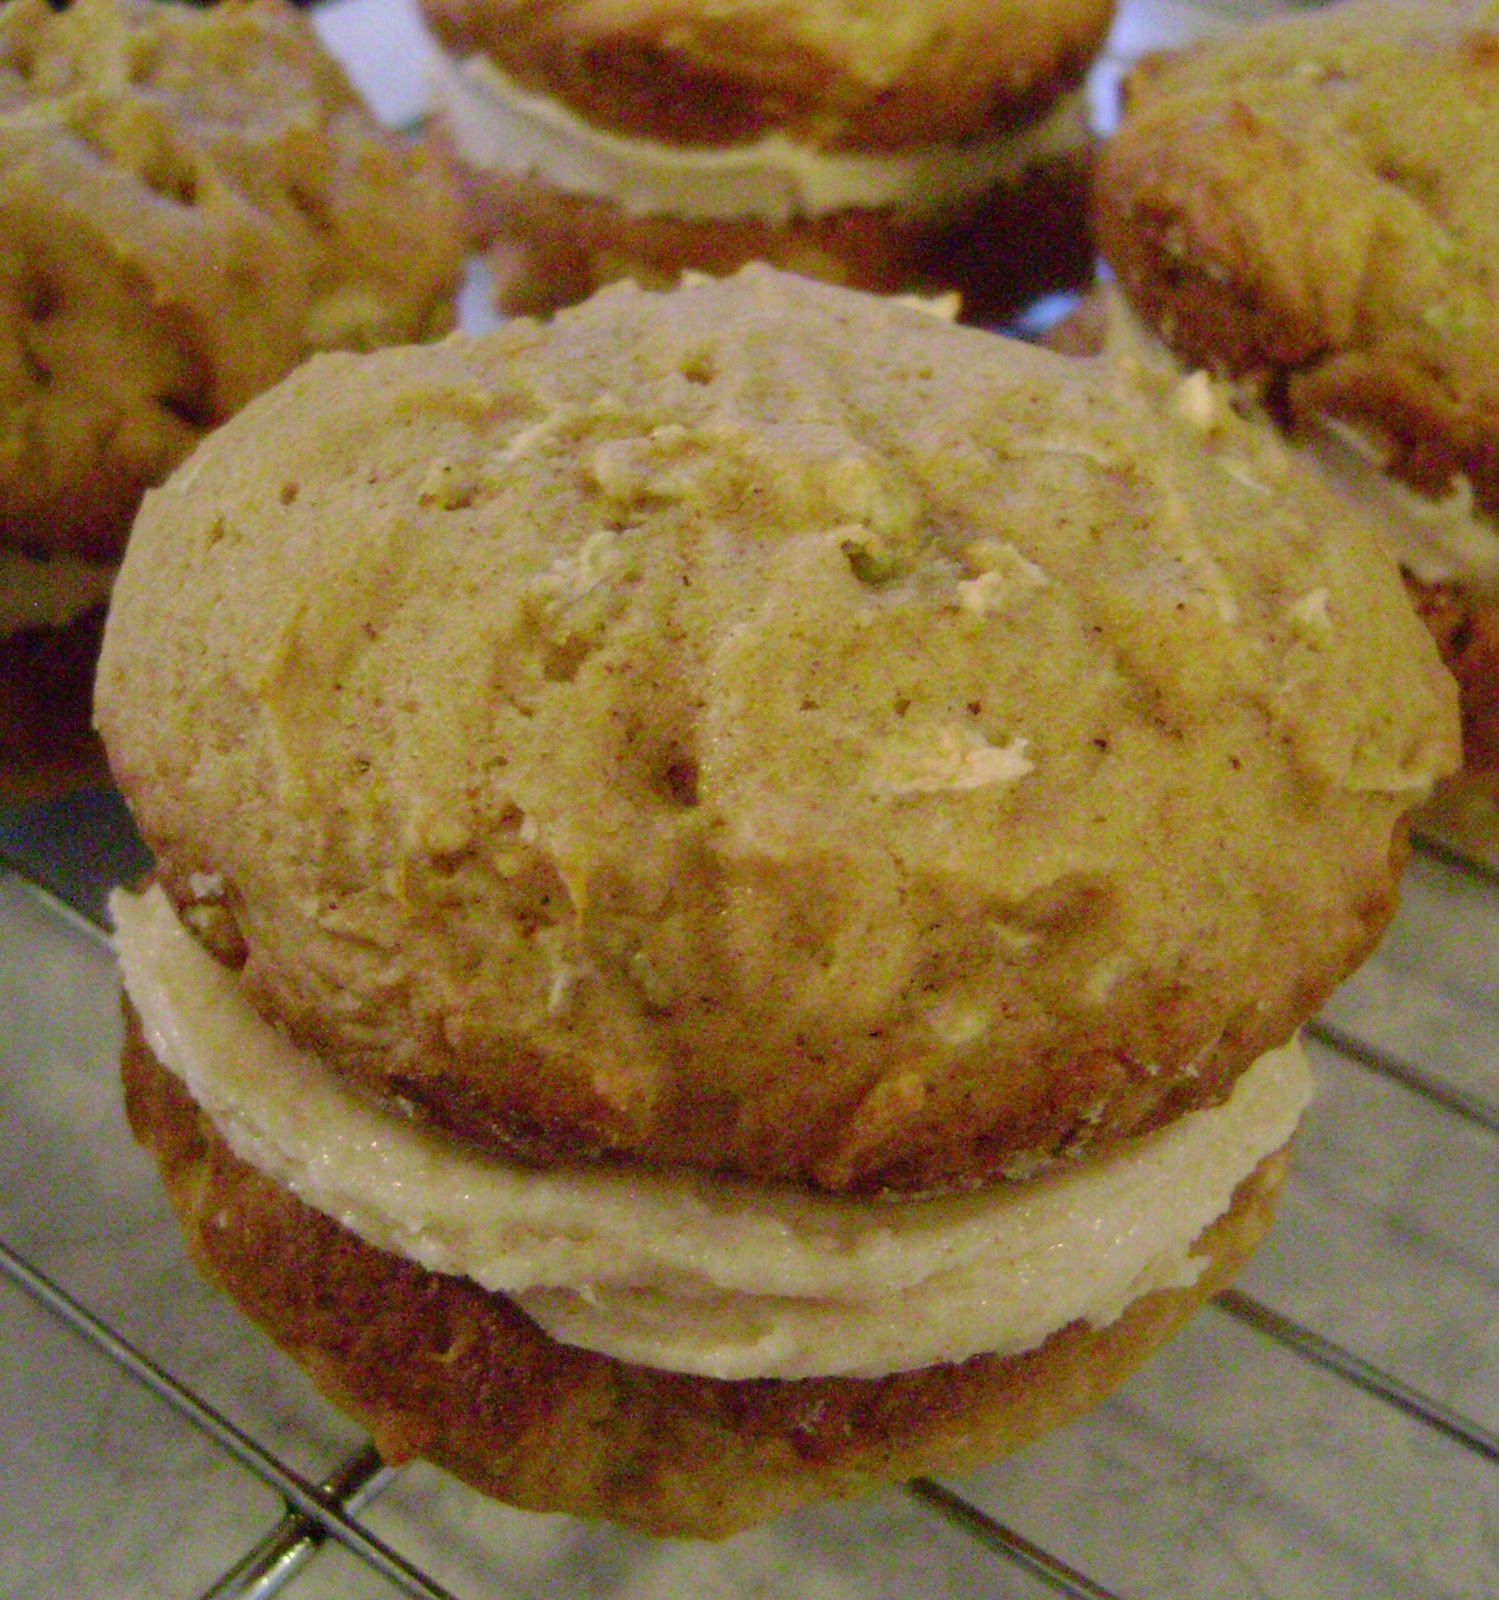 Jo and Sue: Apple Cinnamon Whoopie Pies with Browned Butter Frosting